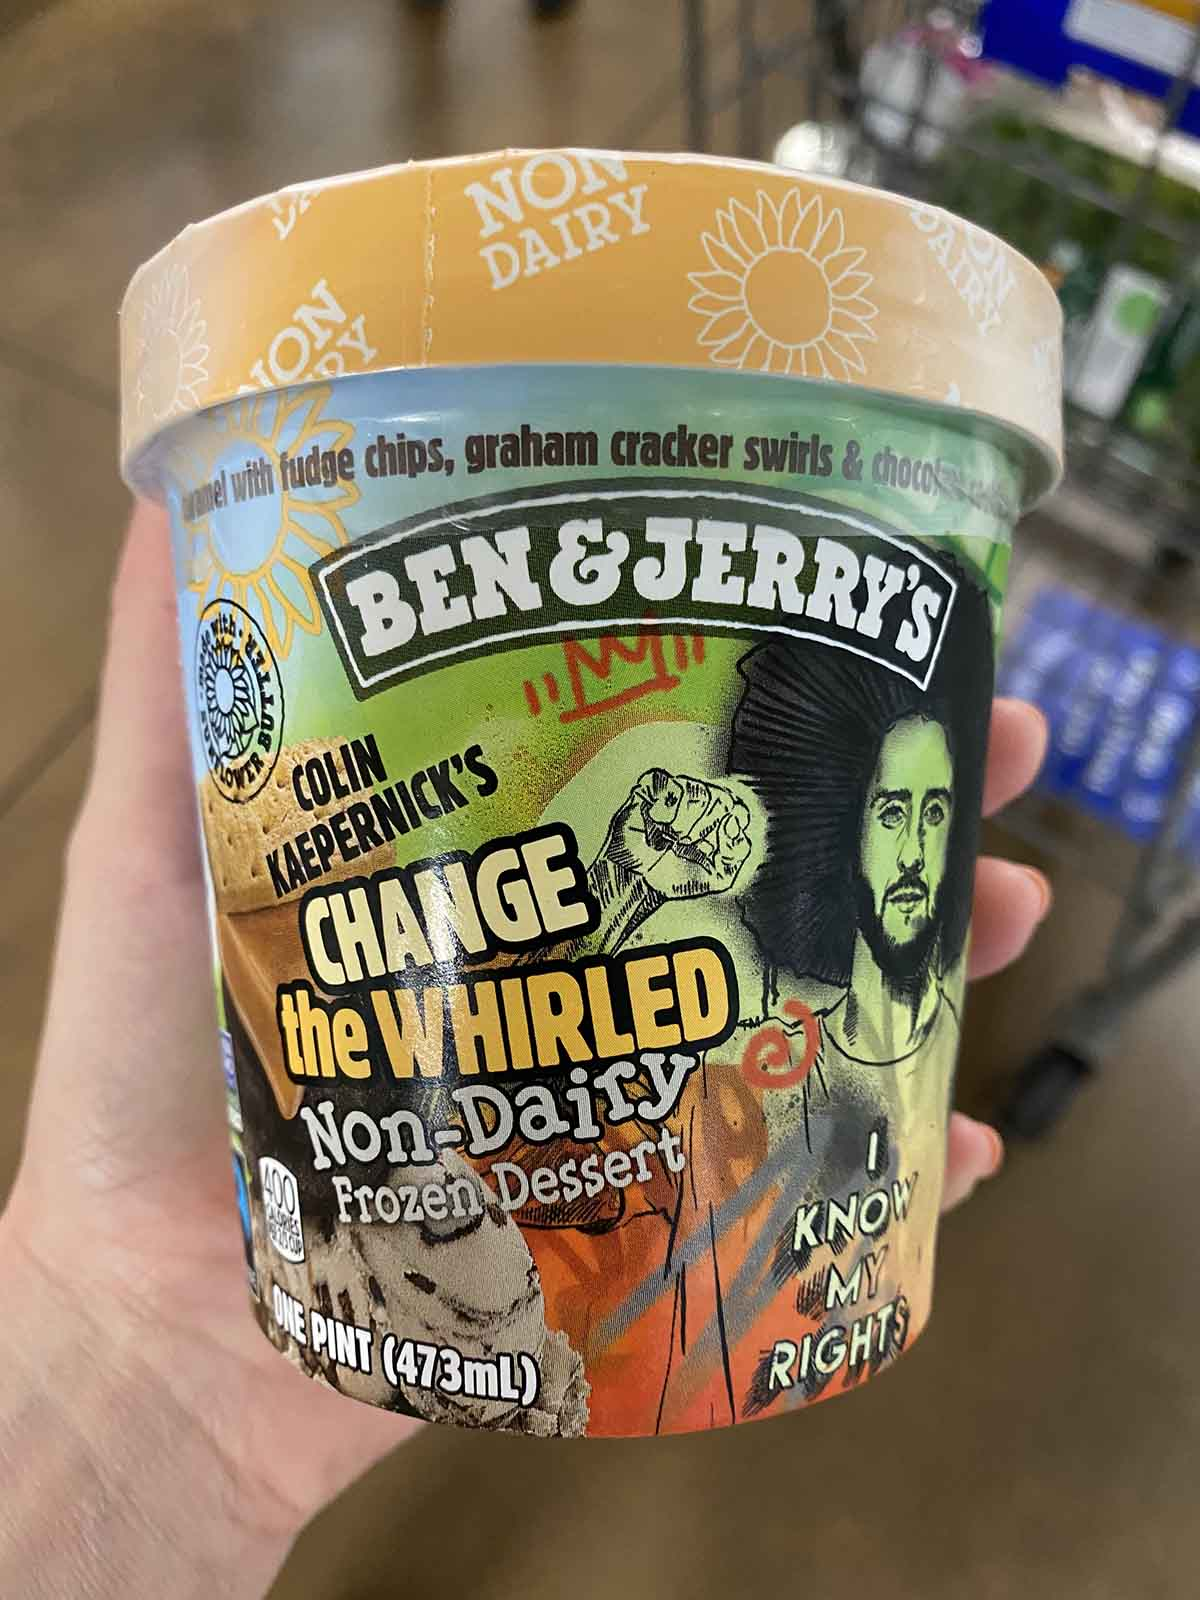 hand holding a pint of Ben & Jerry's Change the Whirled